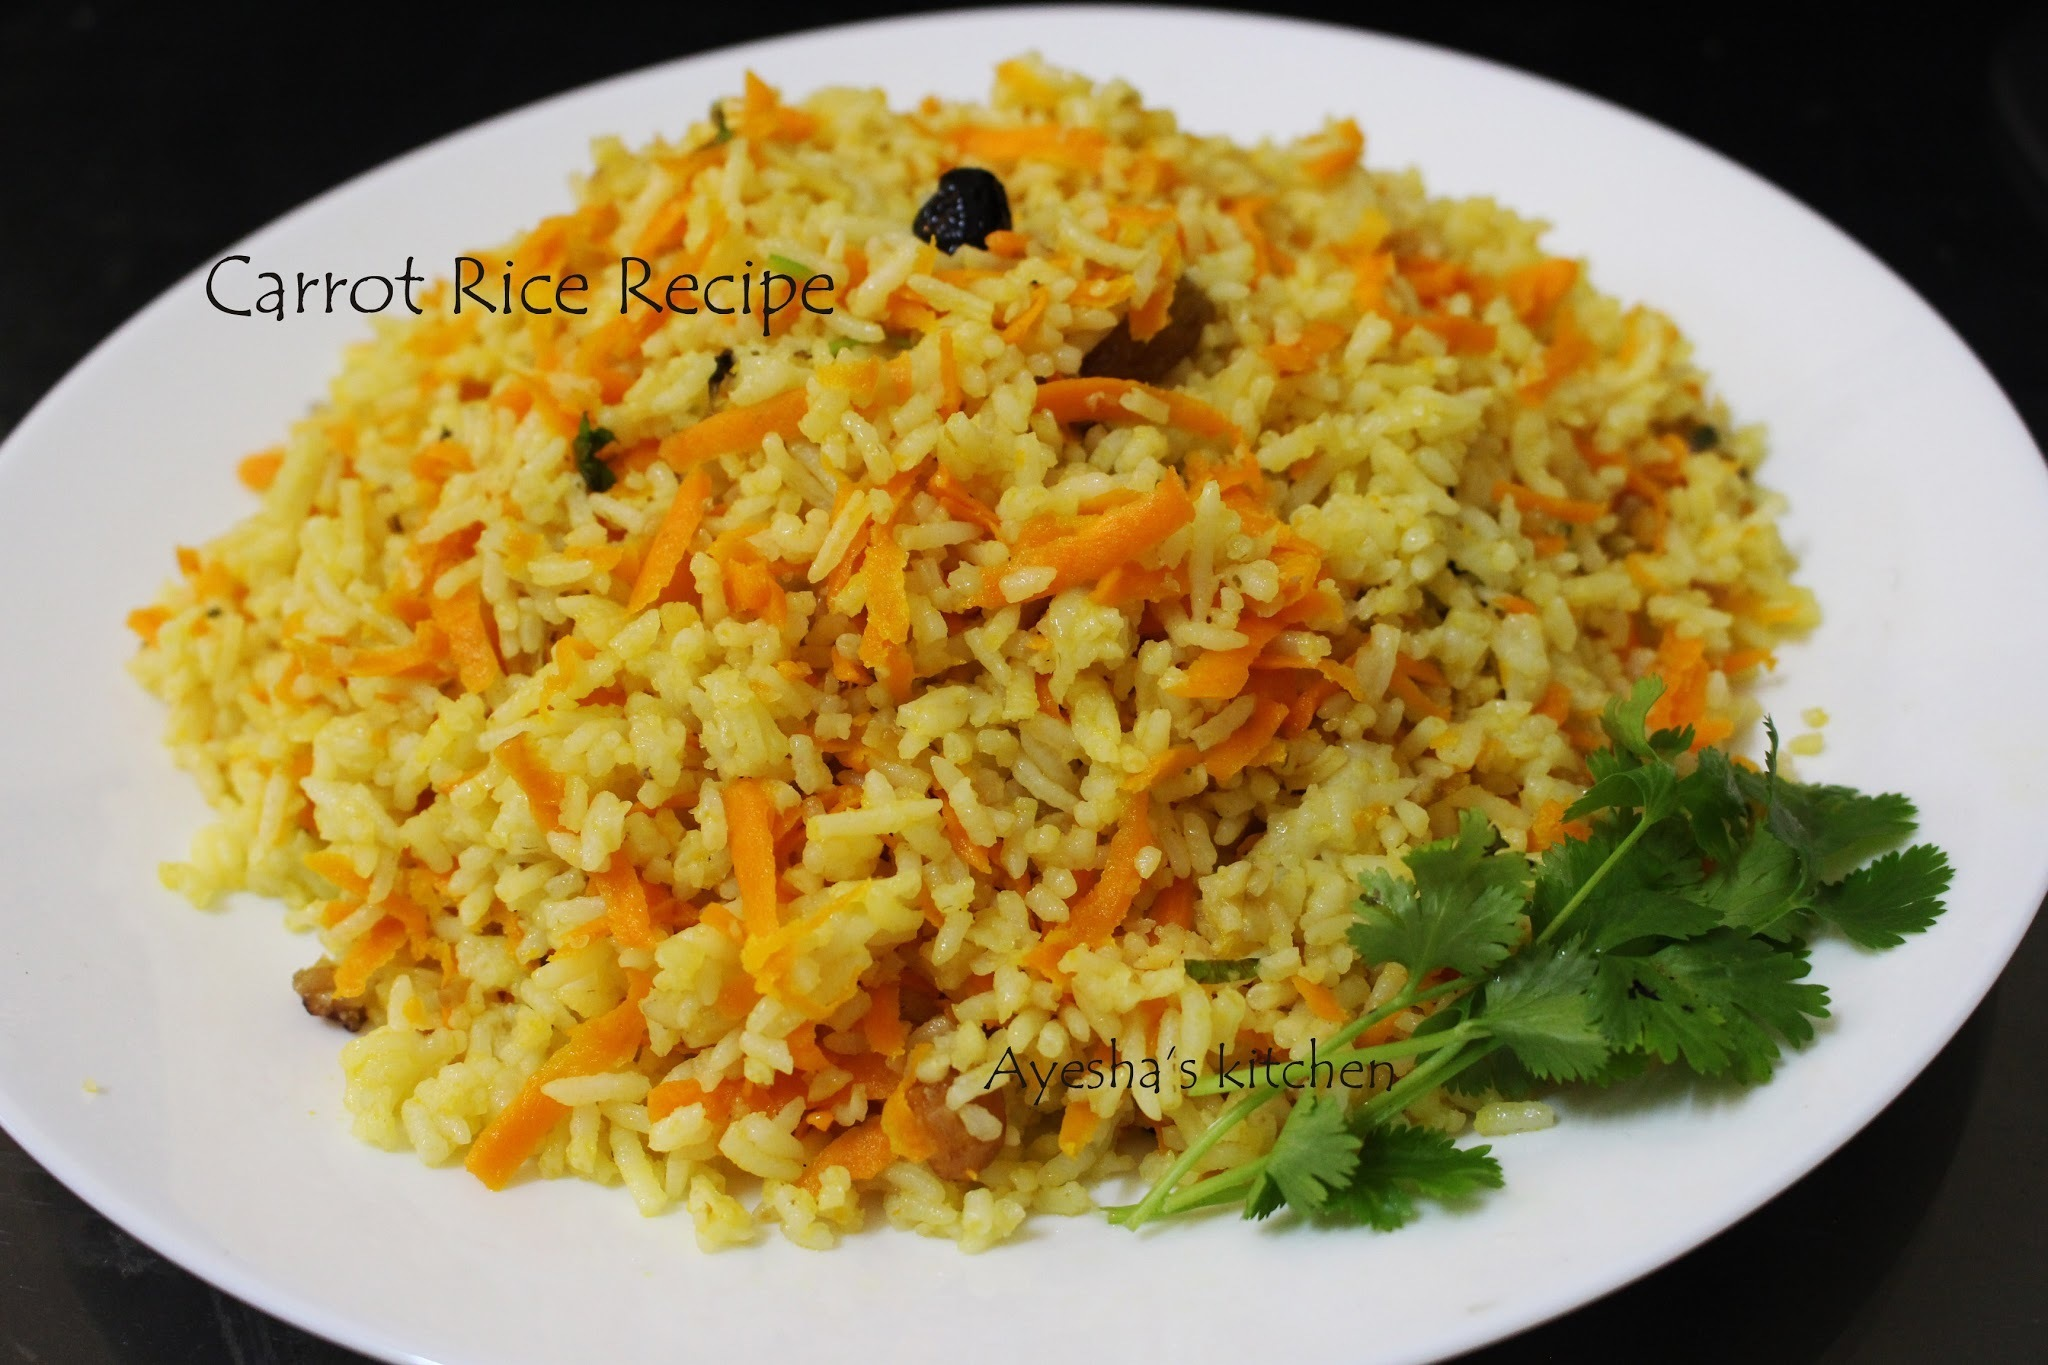 CARROT RICE / HOW TO MAKE CARROT RICE - QUICK LUNCH / DINNER IDEAS